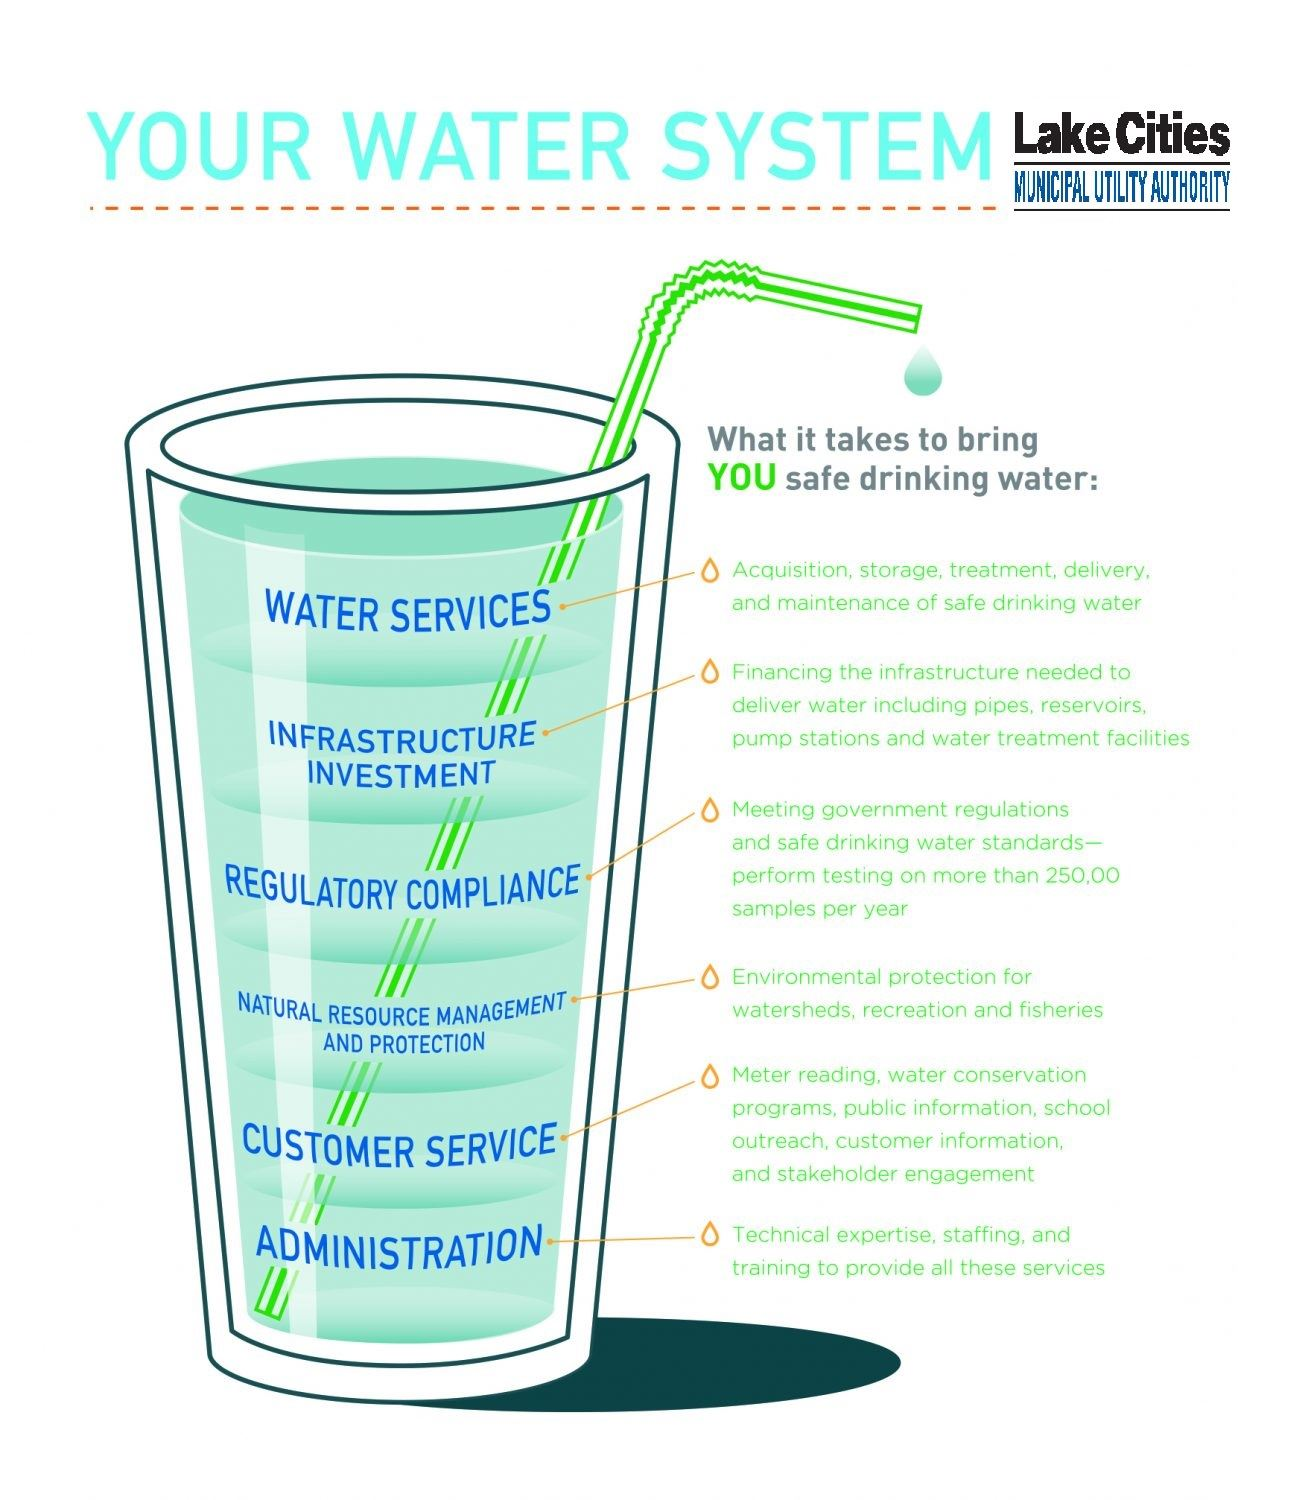 LCMUA Water System Glass